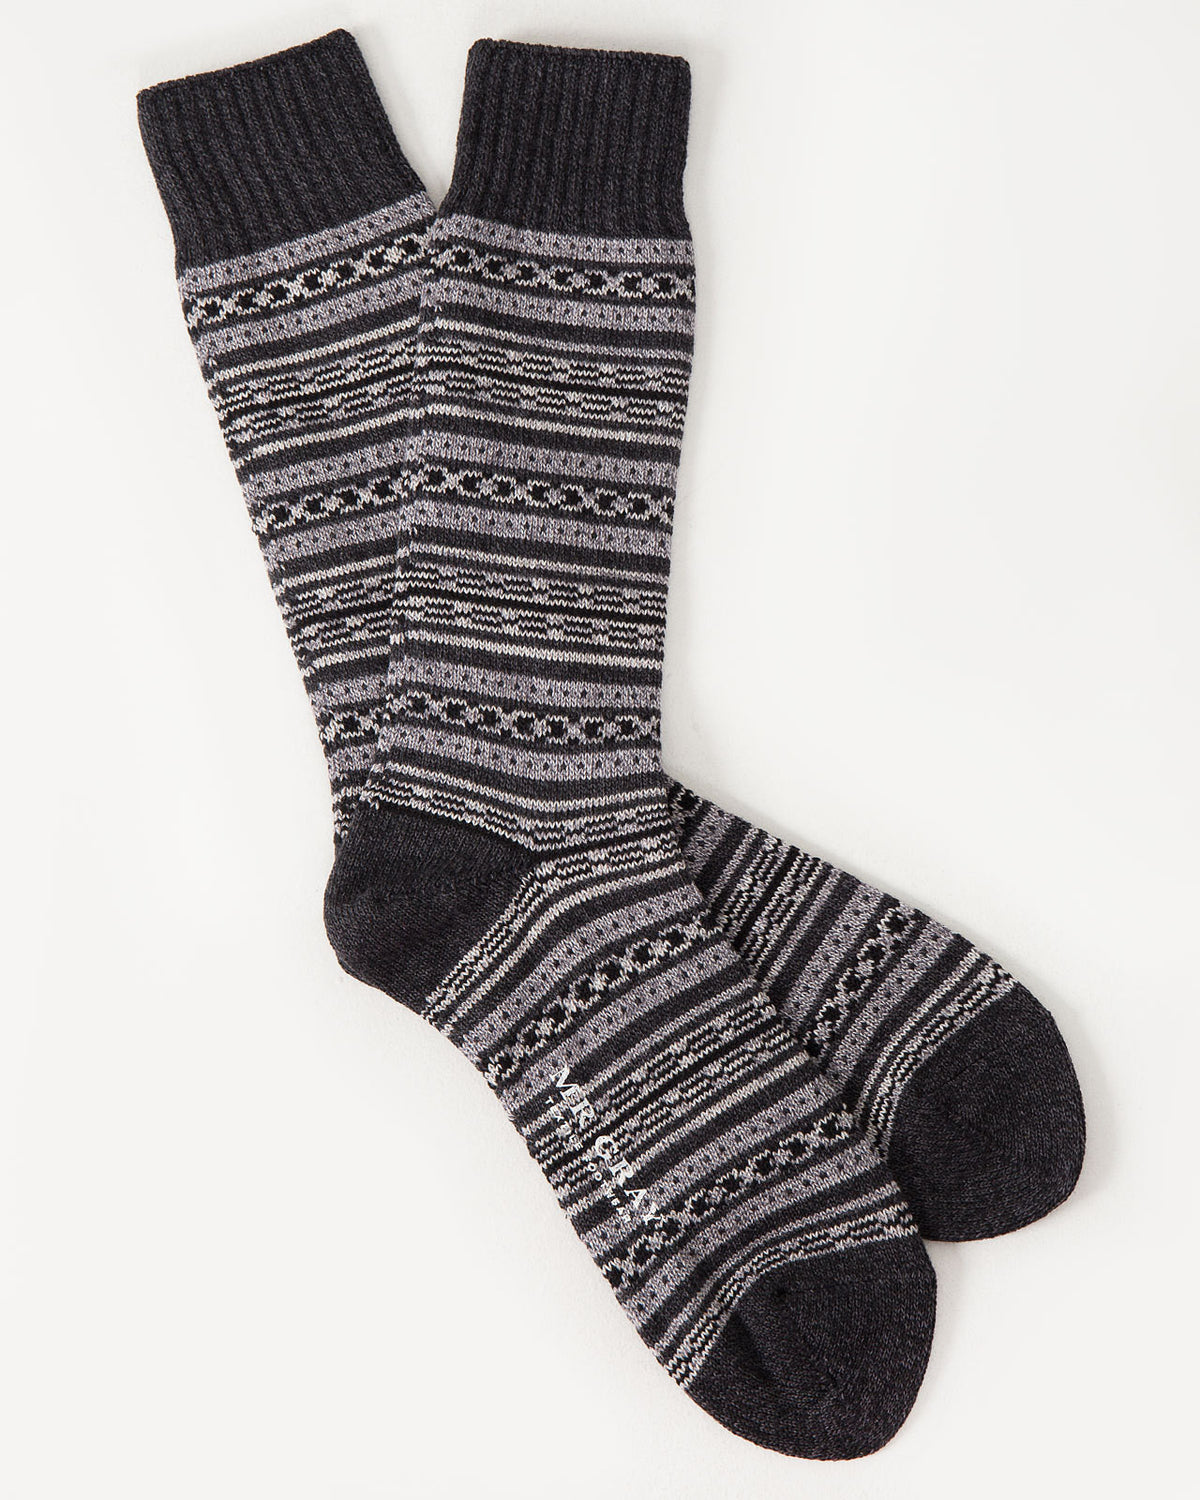 Blanket Border Sock in Black Gray